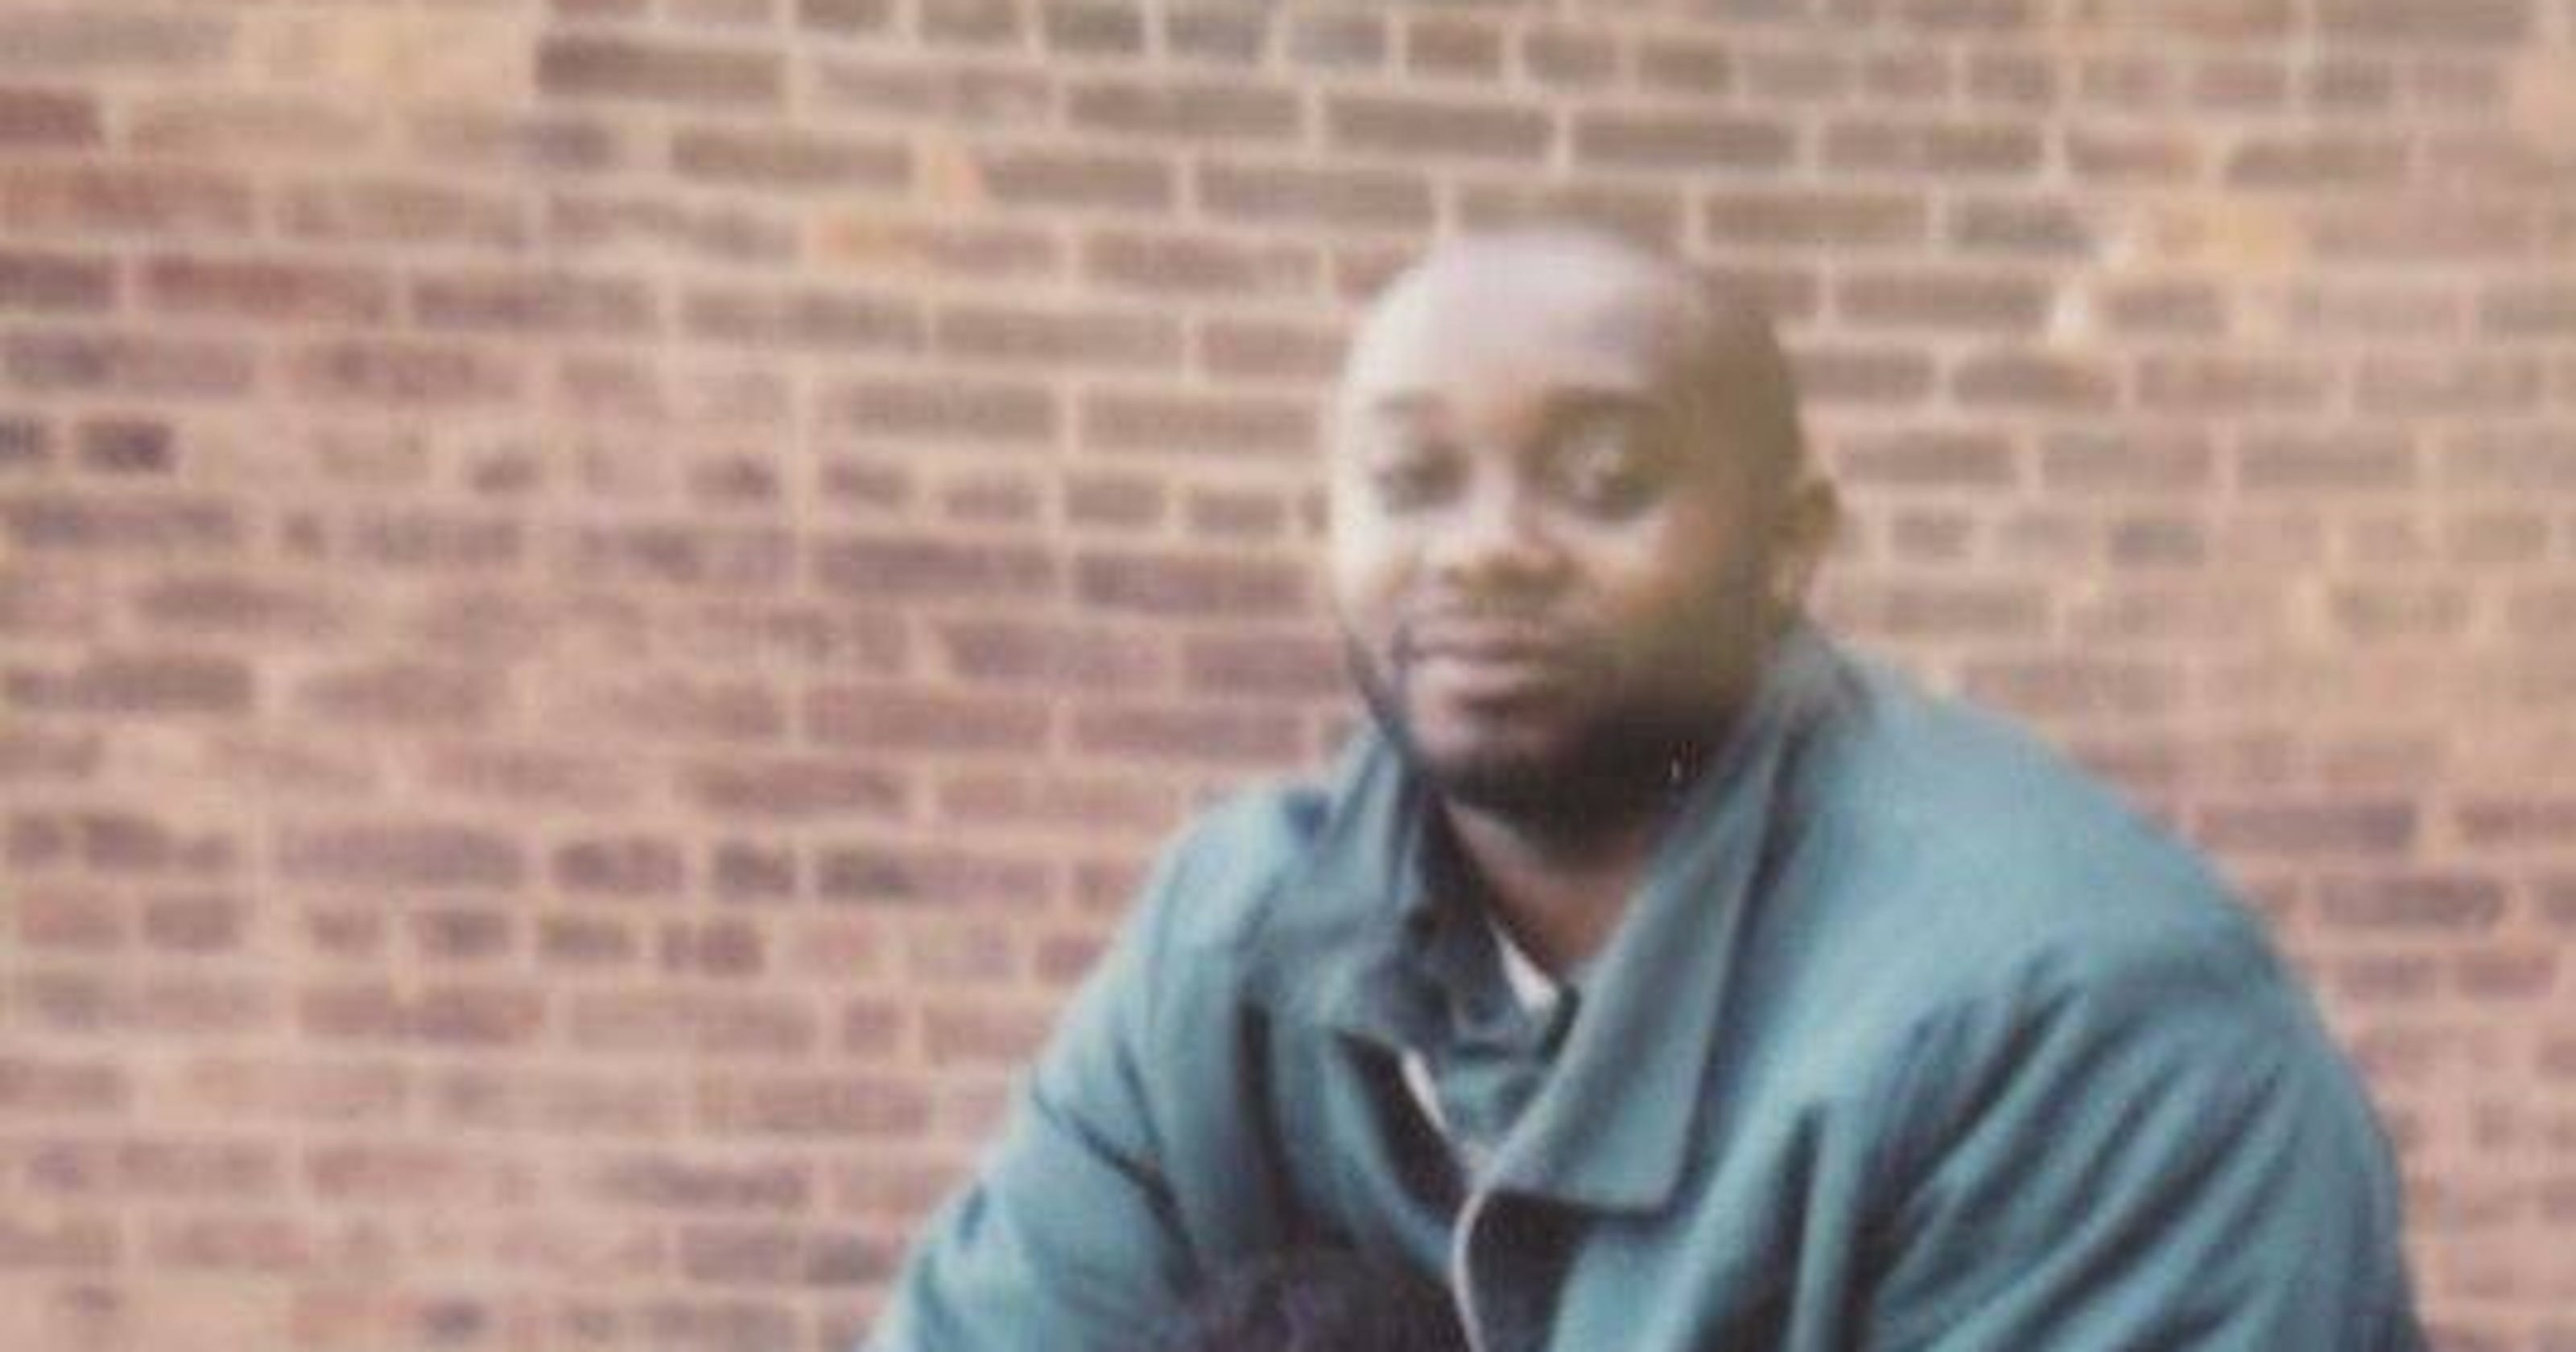 Questions remain after prison inmate's death